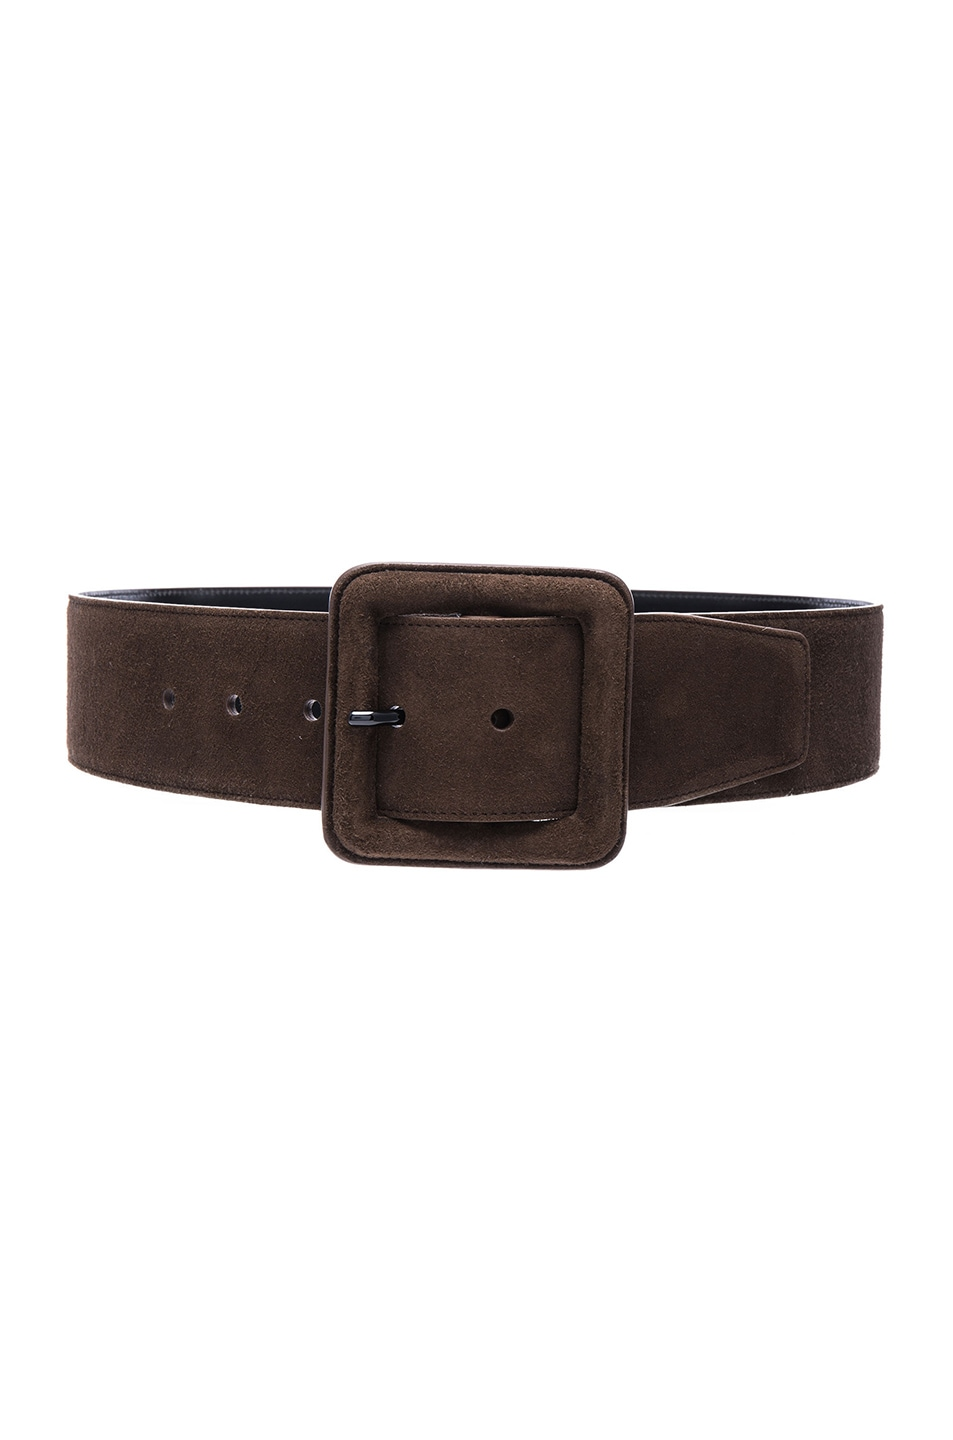 Image 1 of Saint Laurent Suede Buckle Belt in Cafe